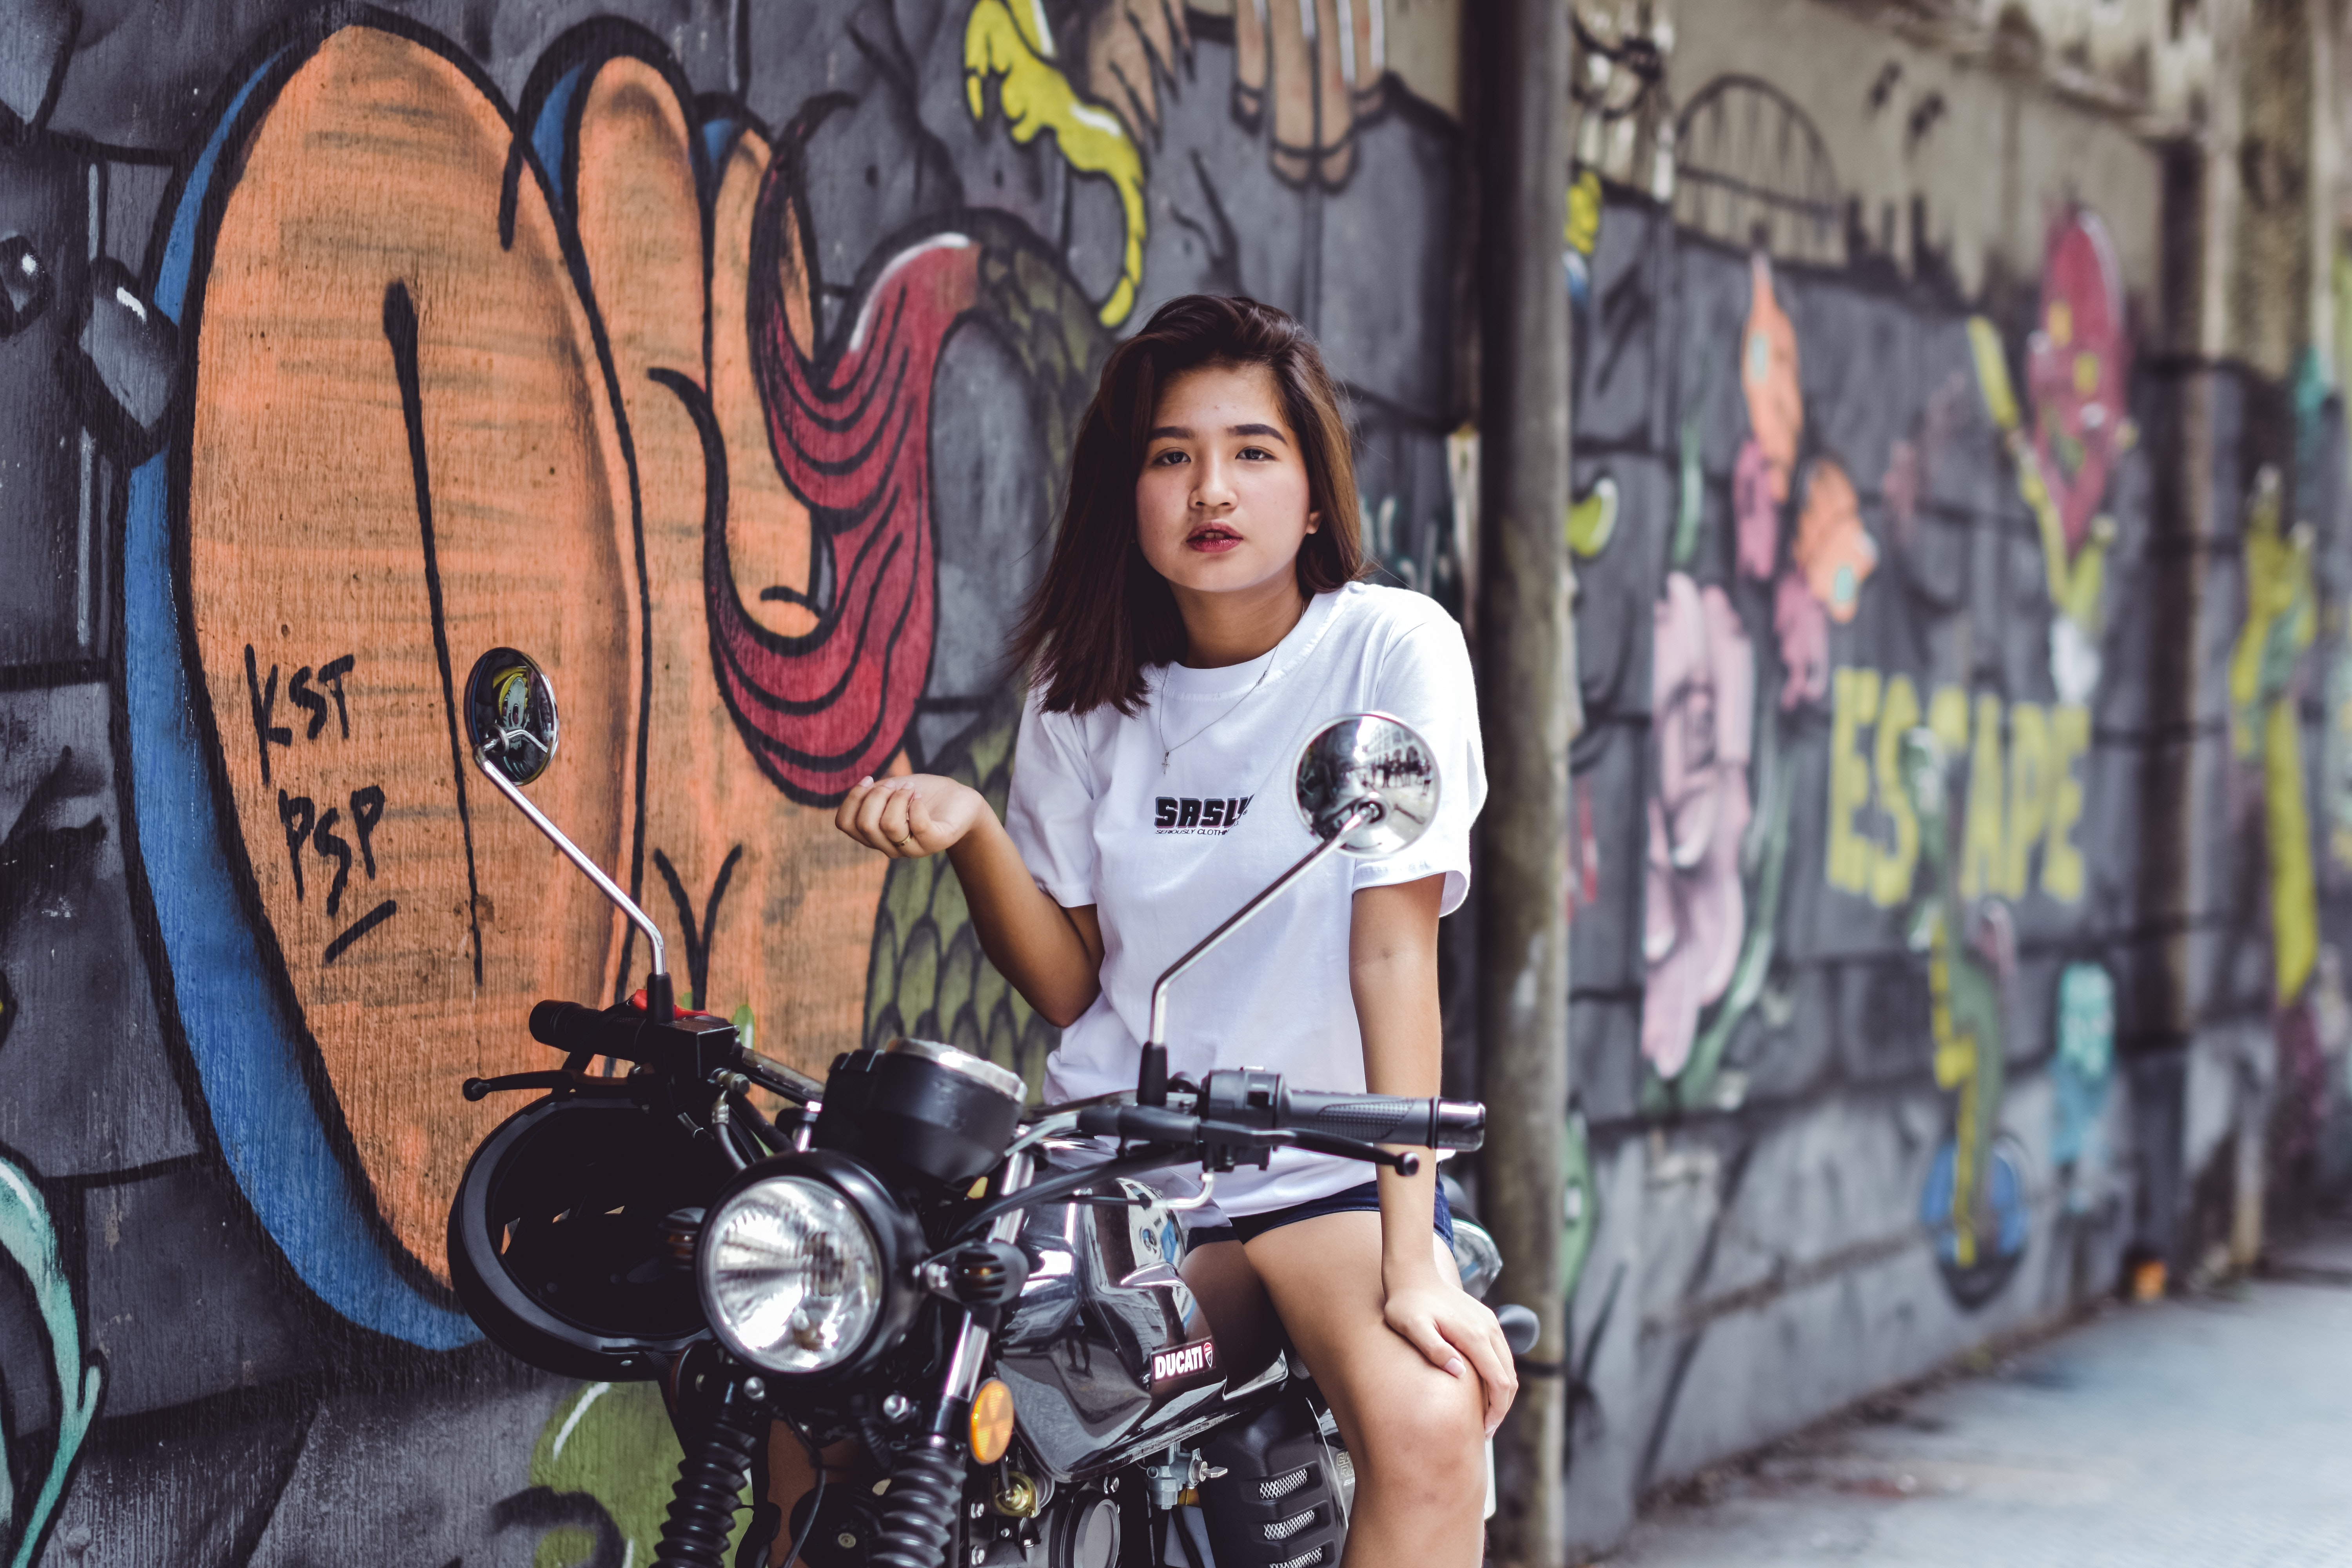 photo-of-woman-sitting-on-motorcycle-2315204